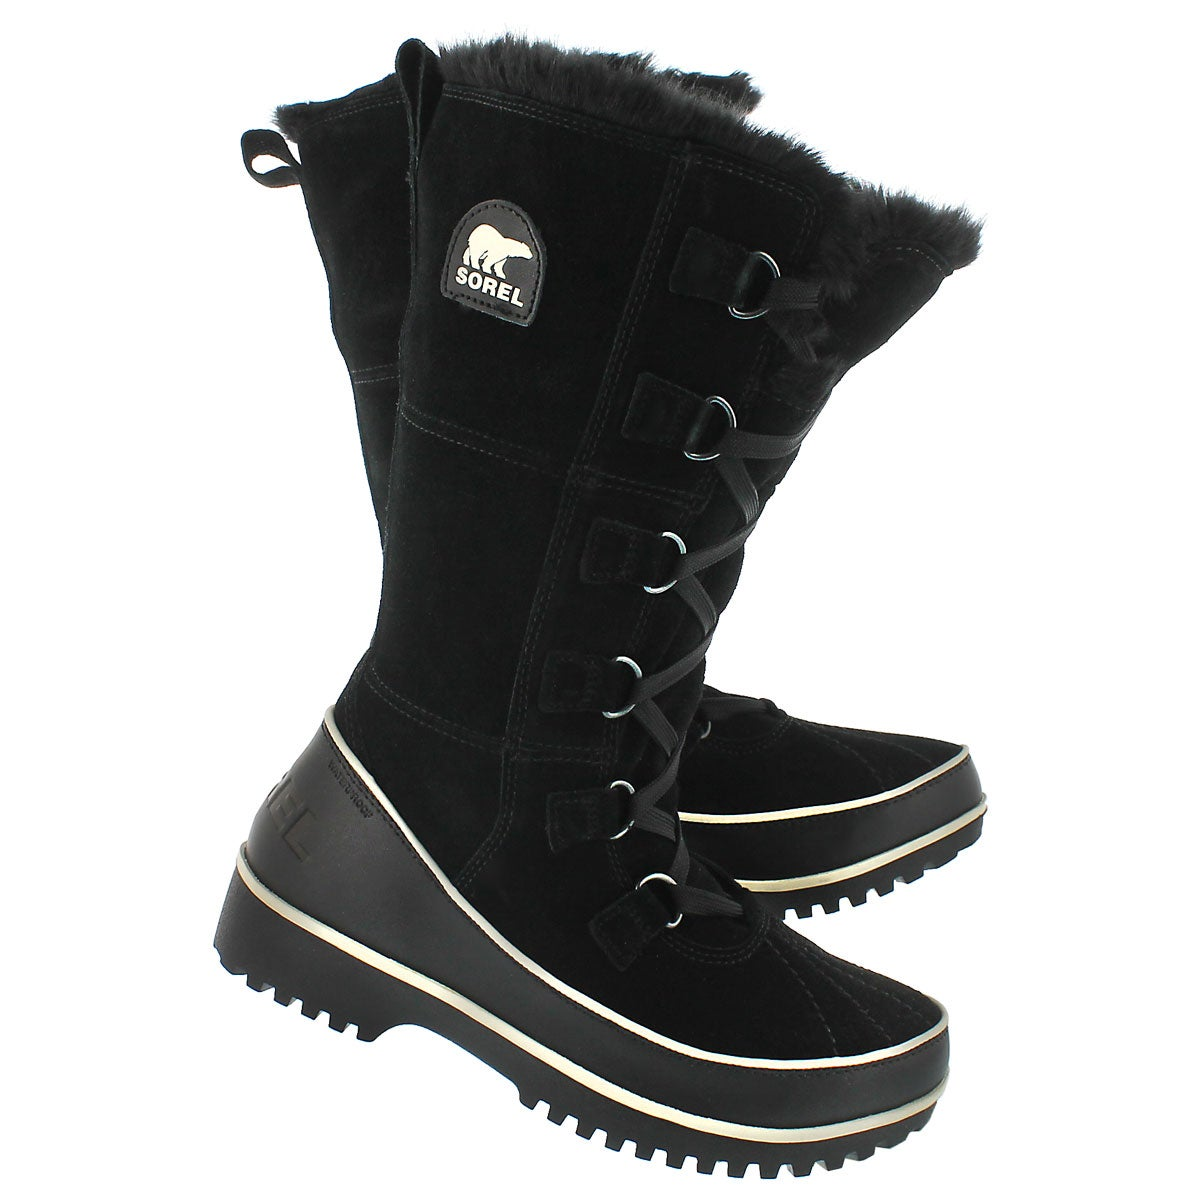 Lds Tivoli High II blk winter boot